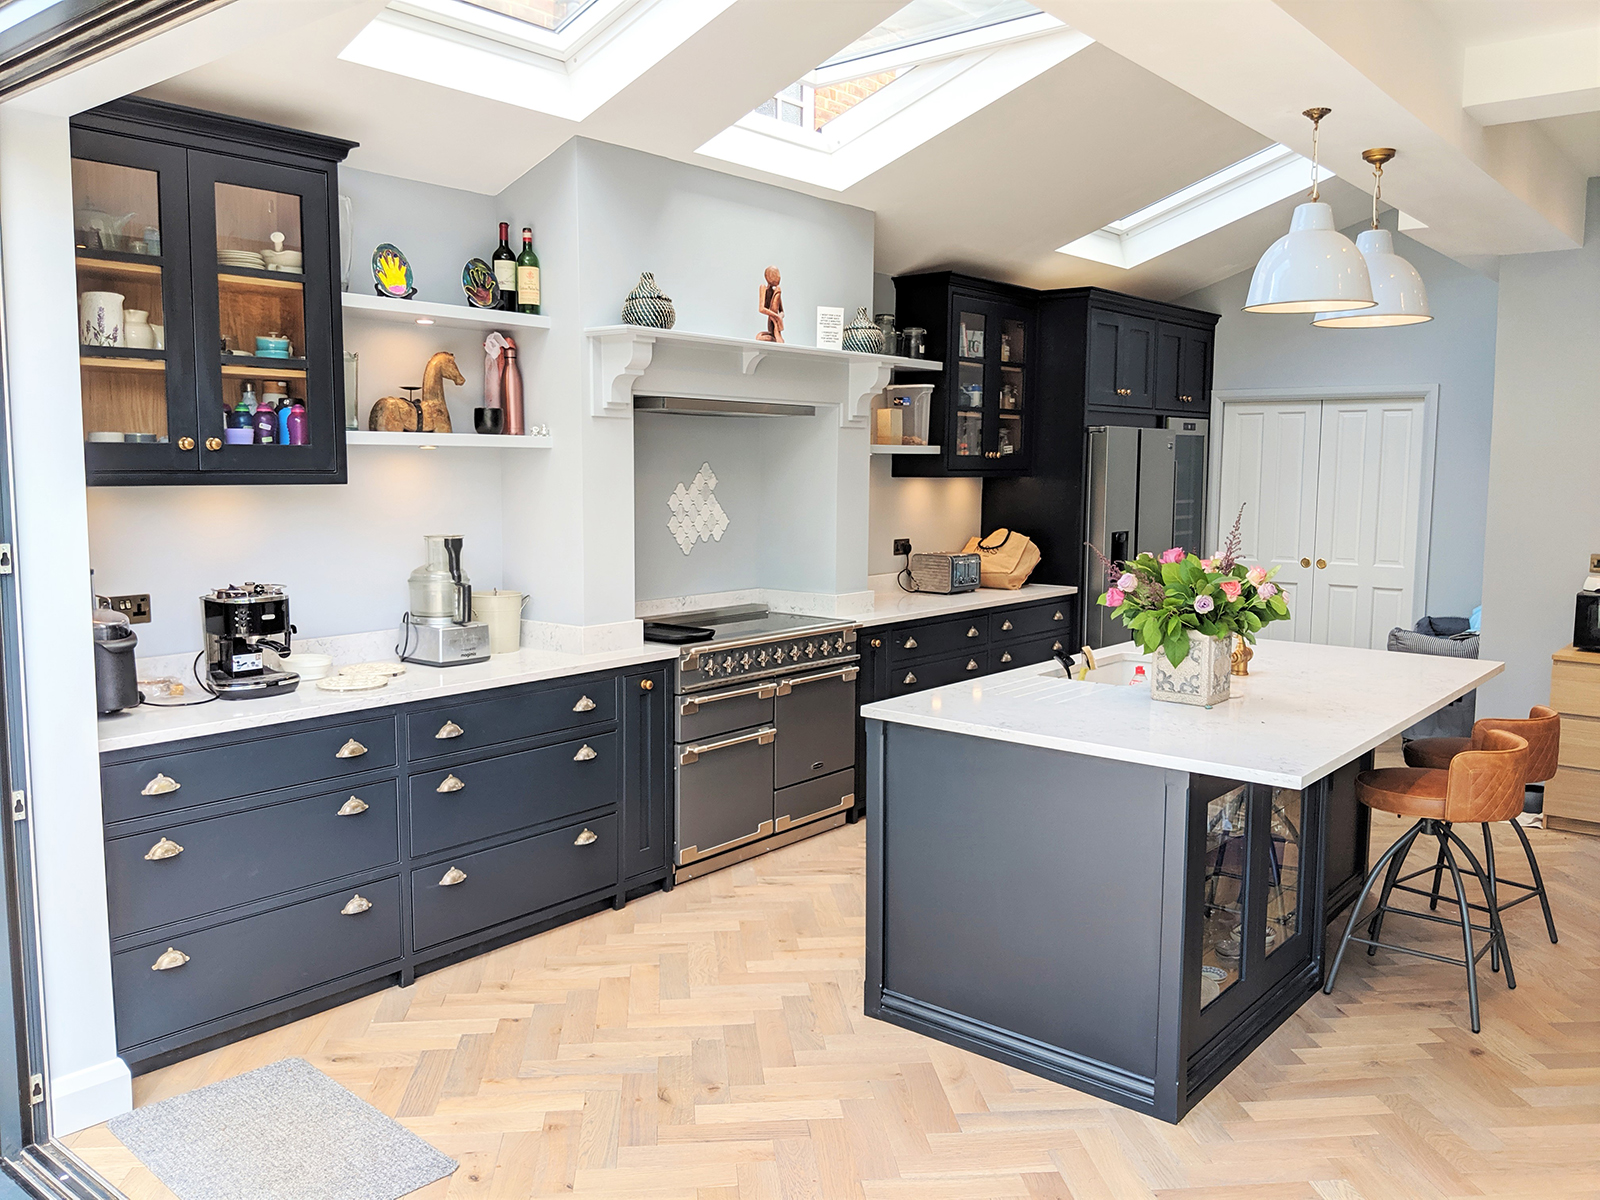 bespoke kitchen designs